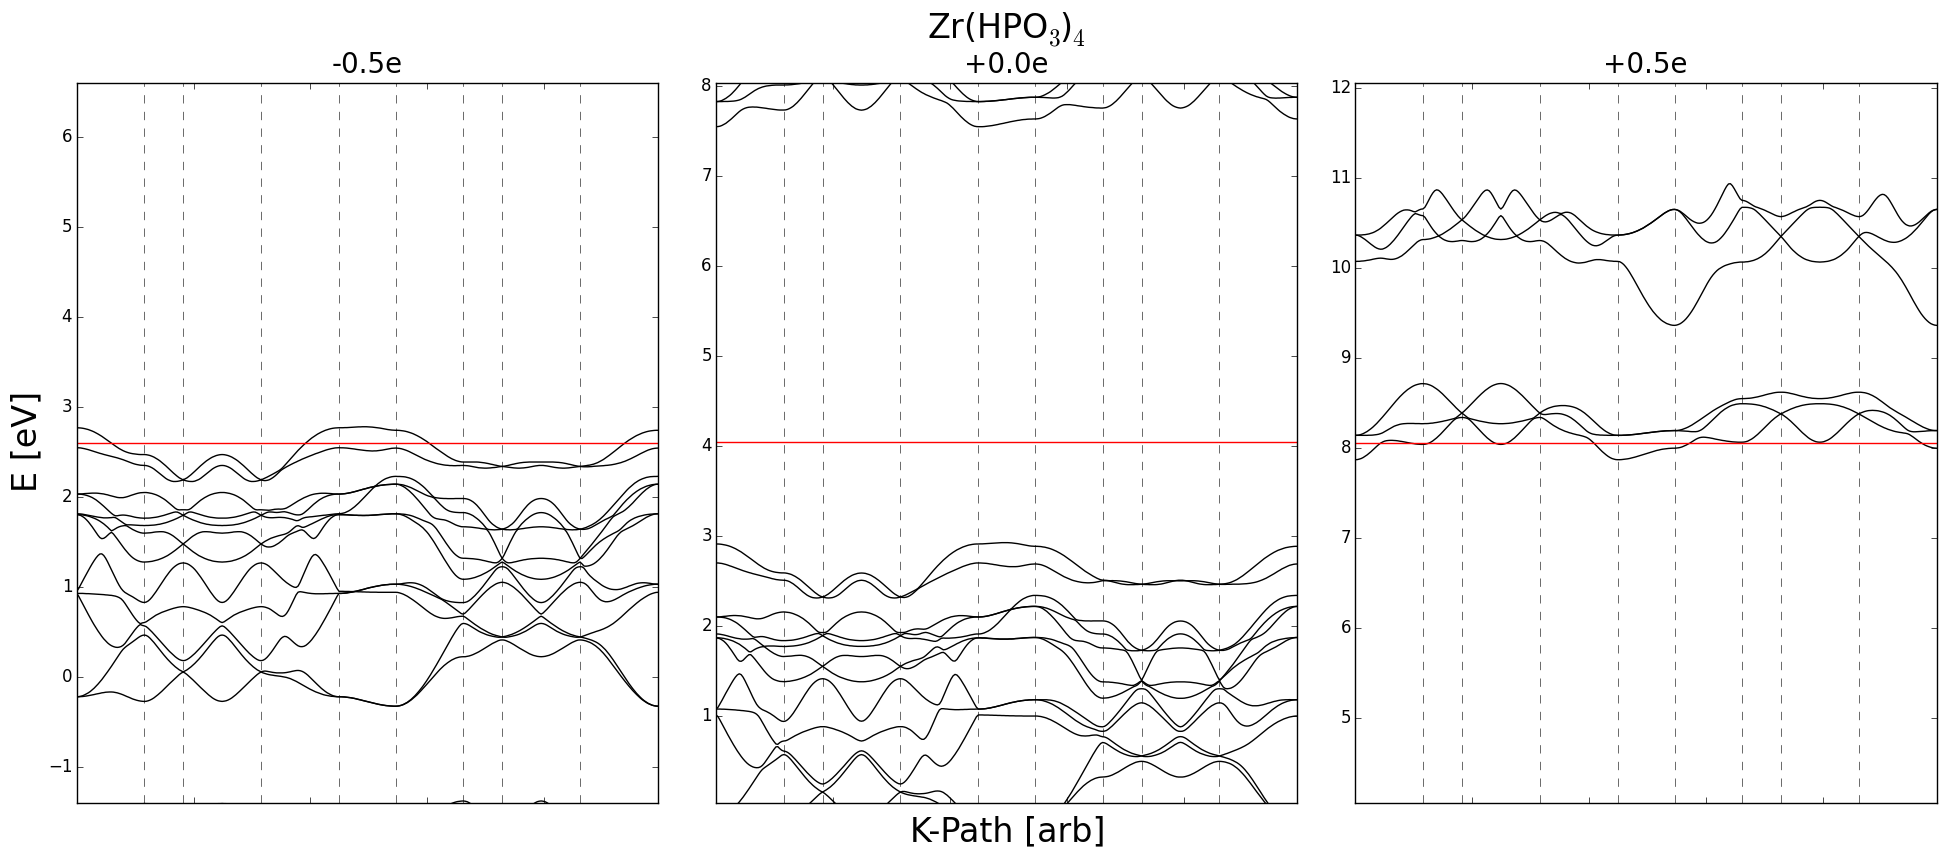 Three different charged states of zirconium phosphate